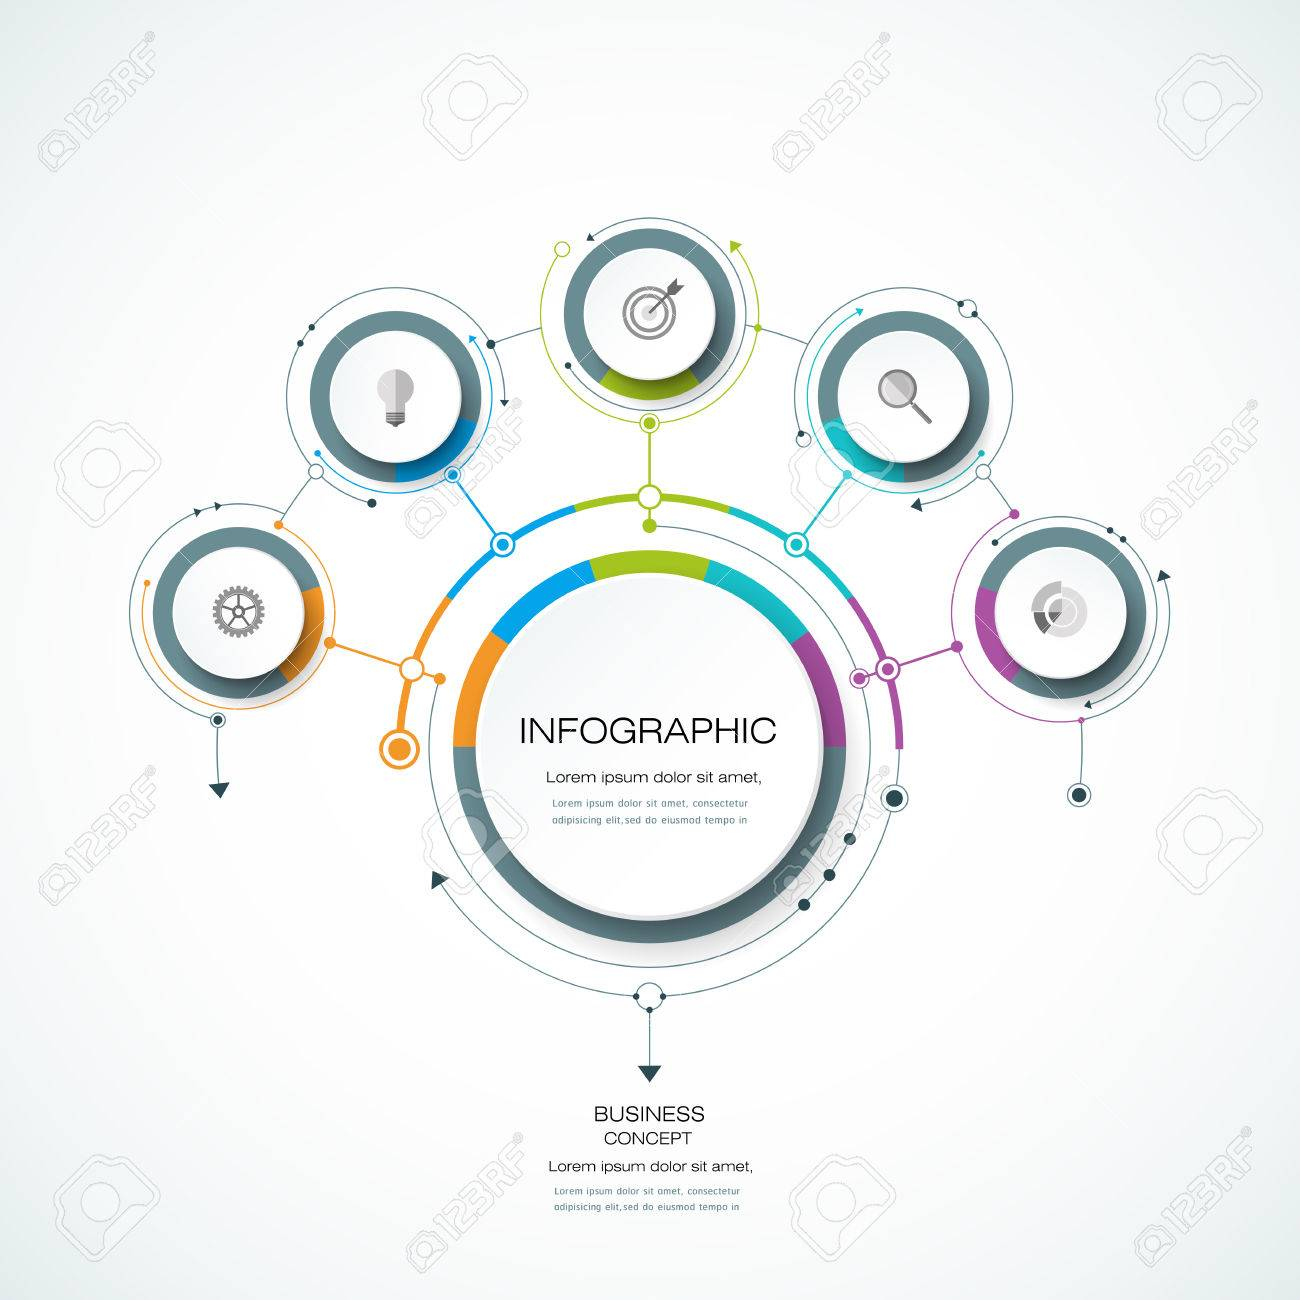 Vector Infographic 3D circle label design template with arrows sign and 5 options or steps. Infographics for business presentations or information banner, process diagram, flow chart, graph, scheme - 71188359